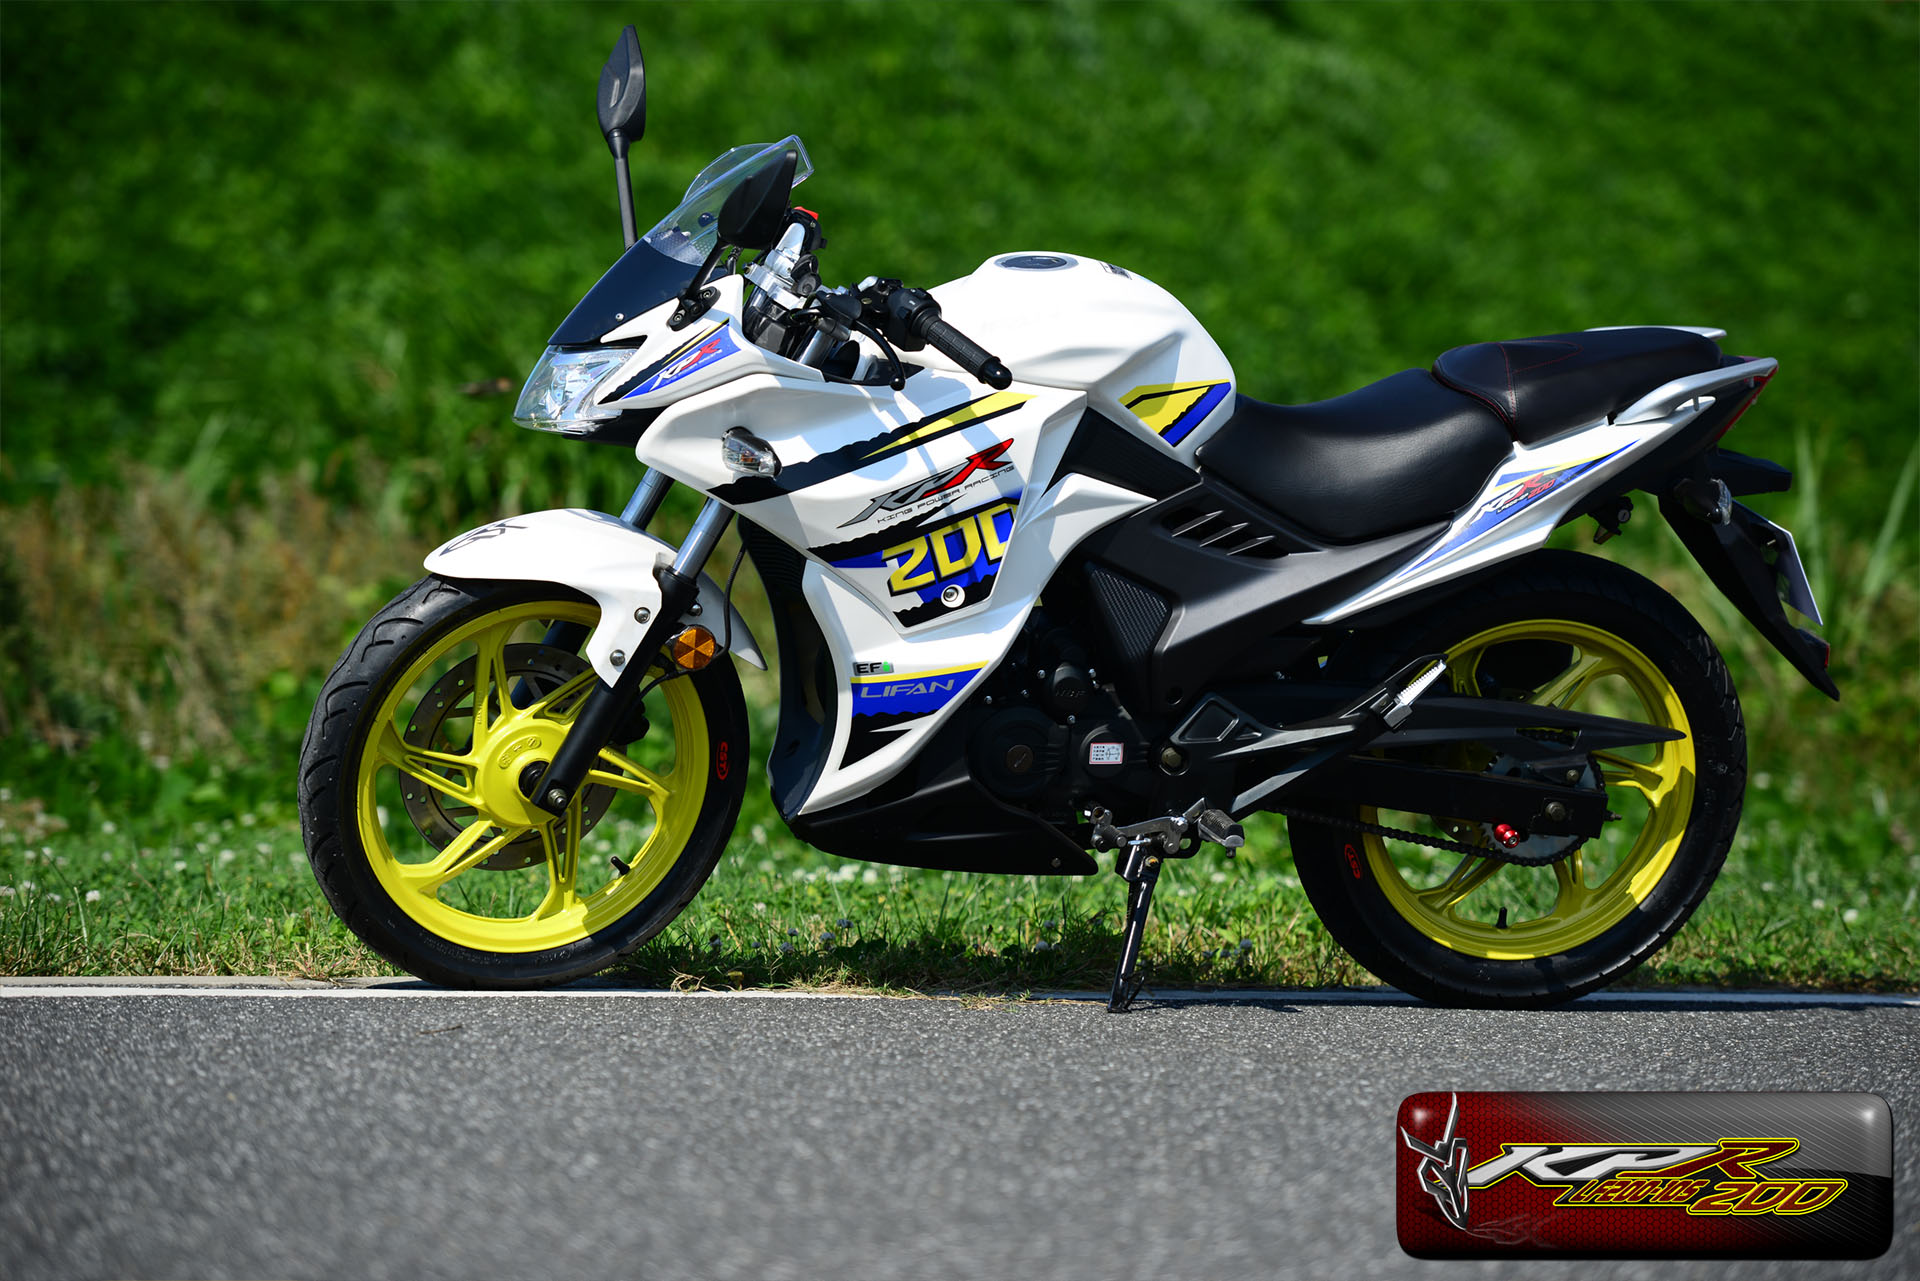 Lifan 200 photo - 8